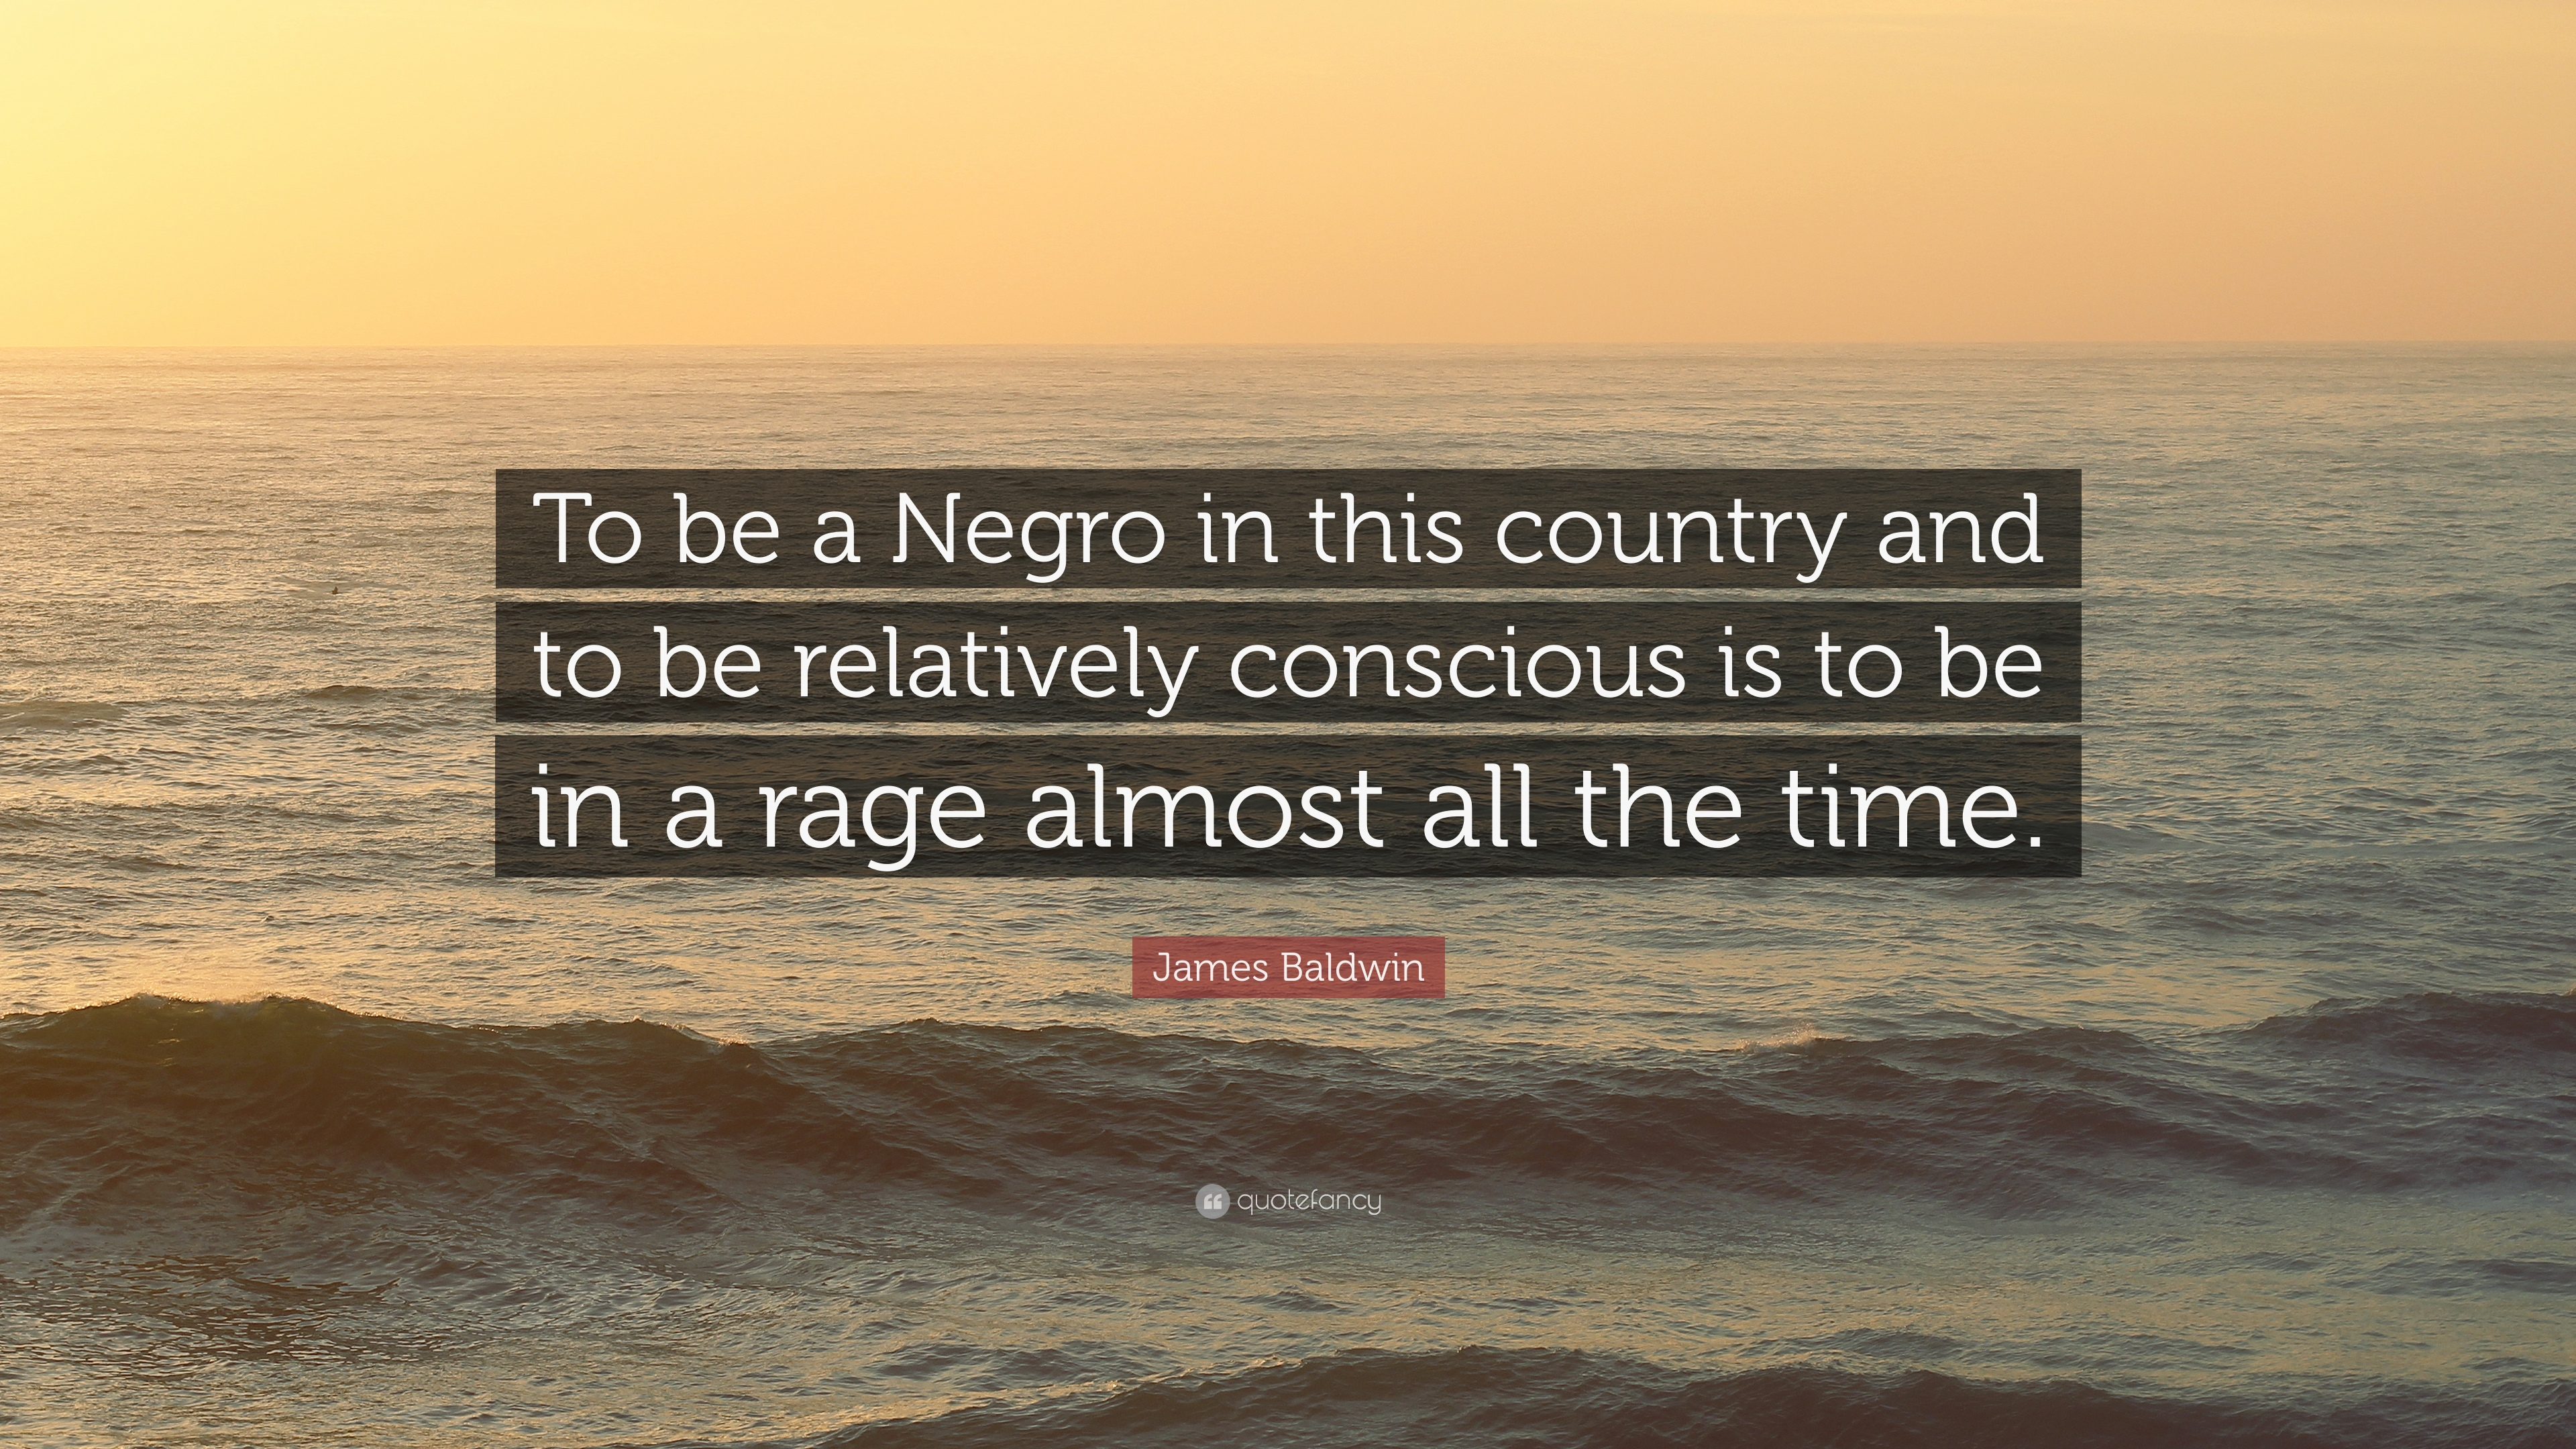 James Baldwin Quotes To Be A Negro